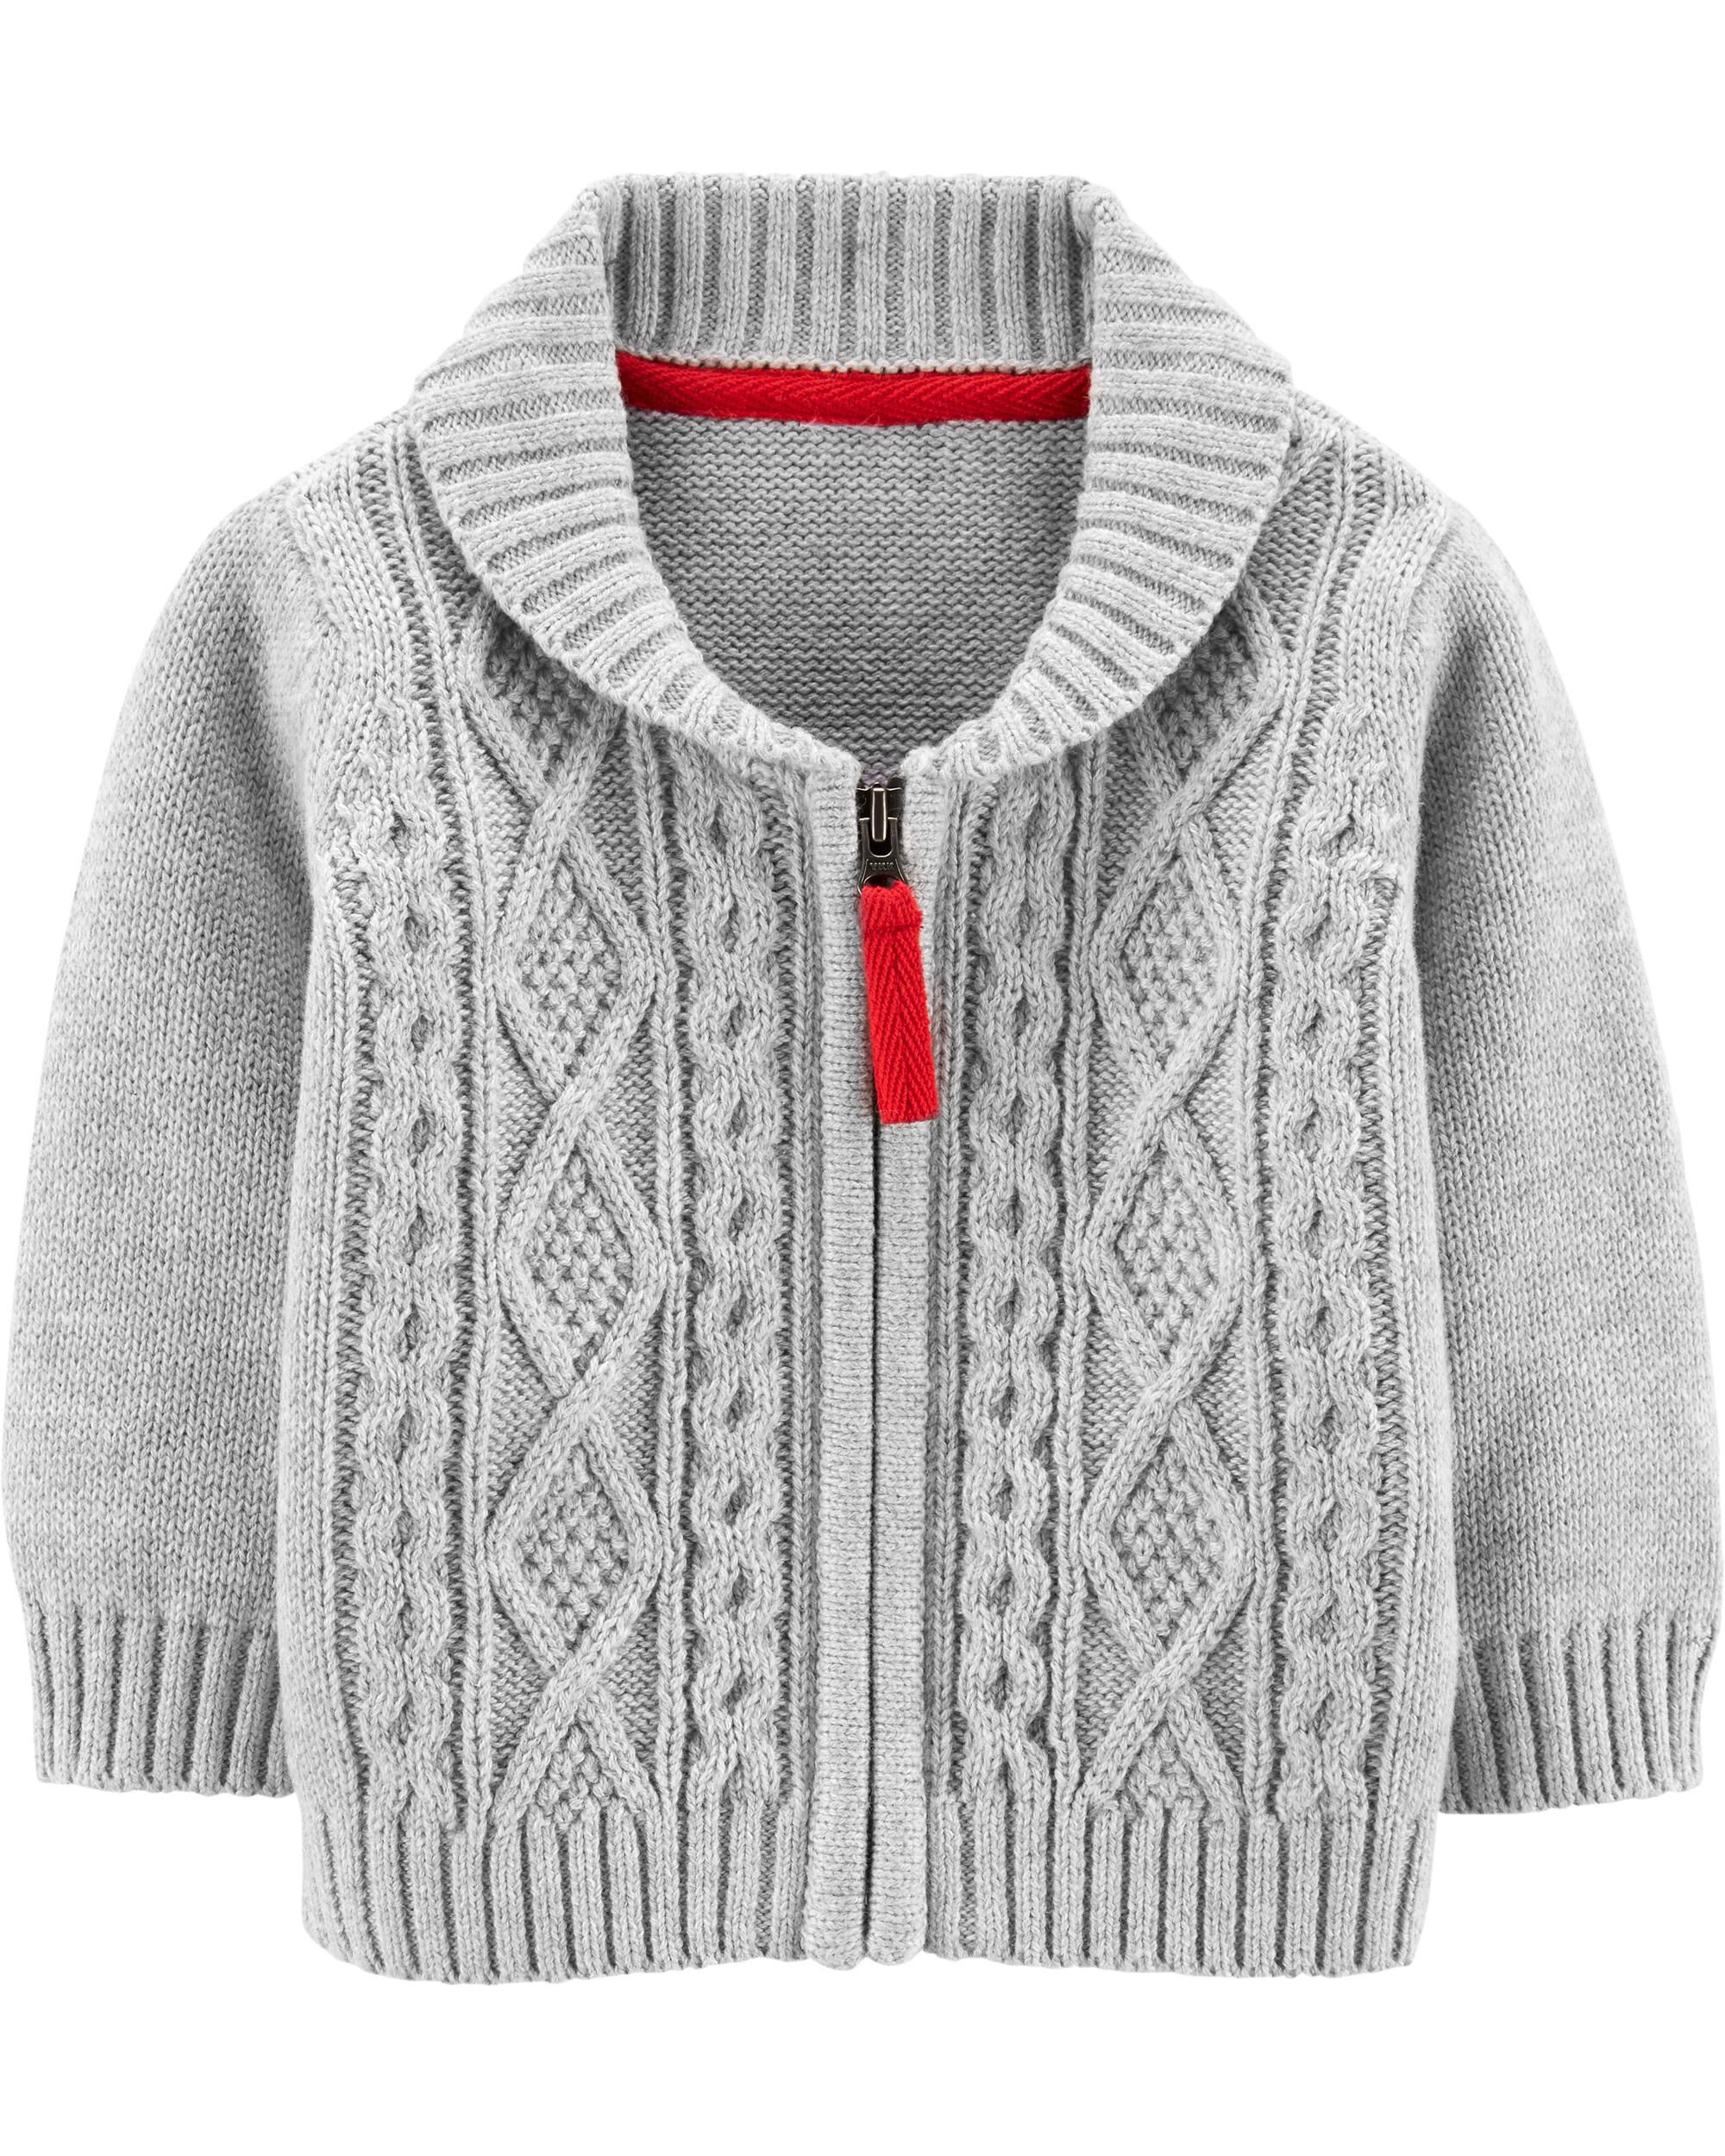 Zip Up Cable Knit Sweater  